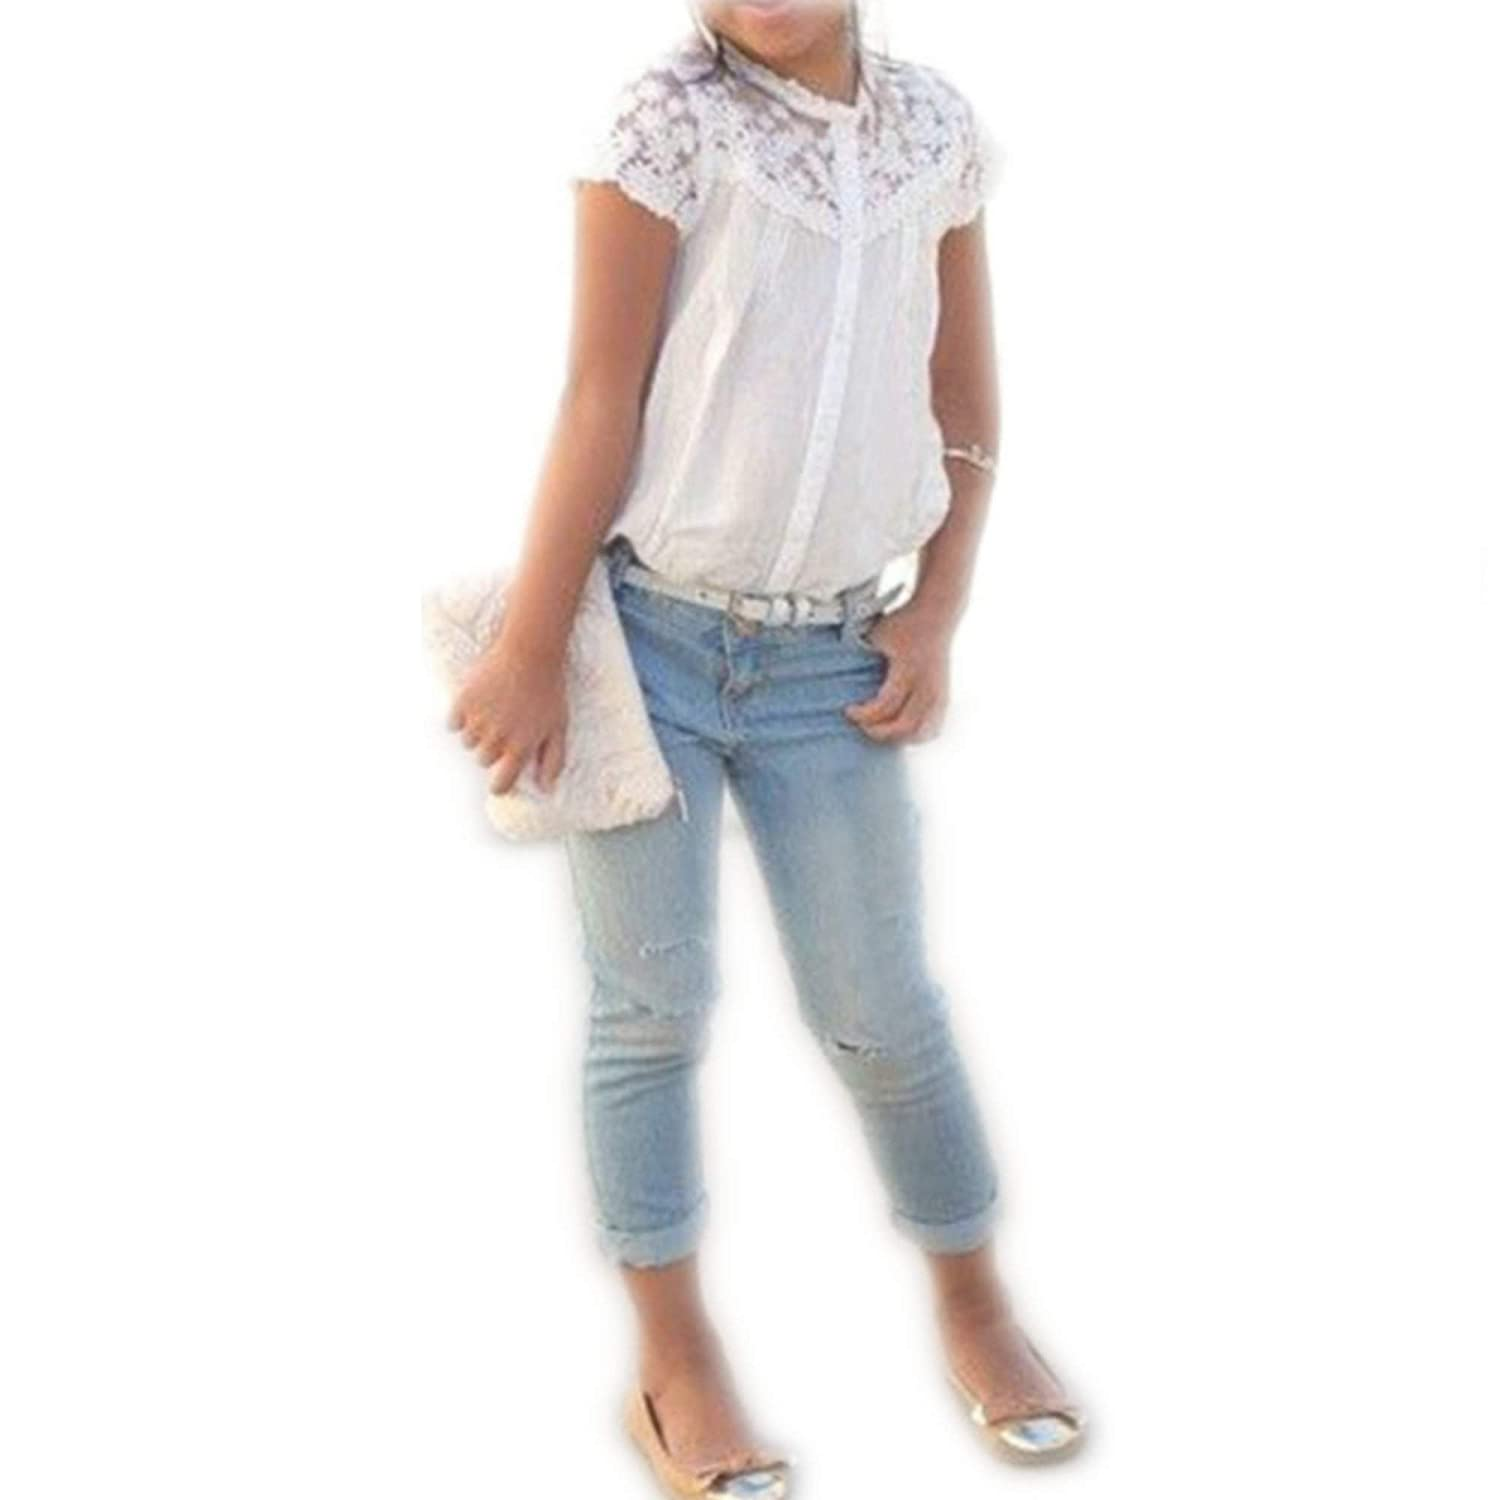 Finejo Baby Girls Kids Blouse+Jeans Pants Casual Clothes Sets Suit Outfits др коффер m 40587 04 шапка